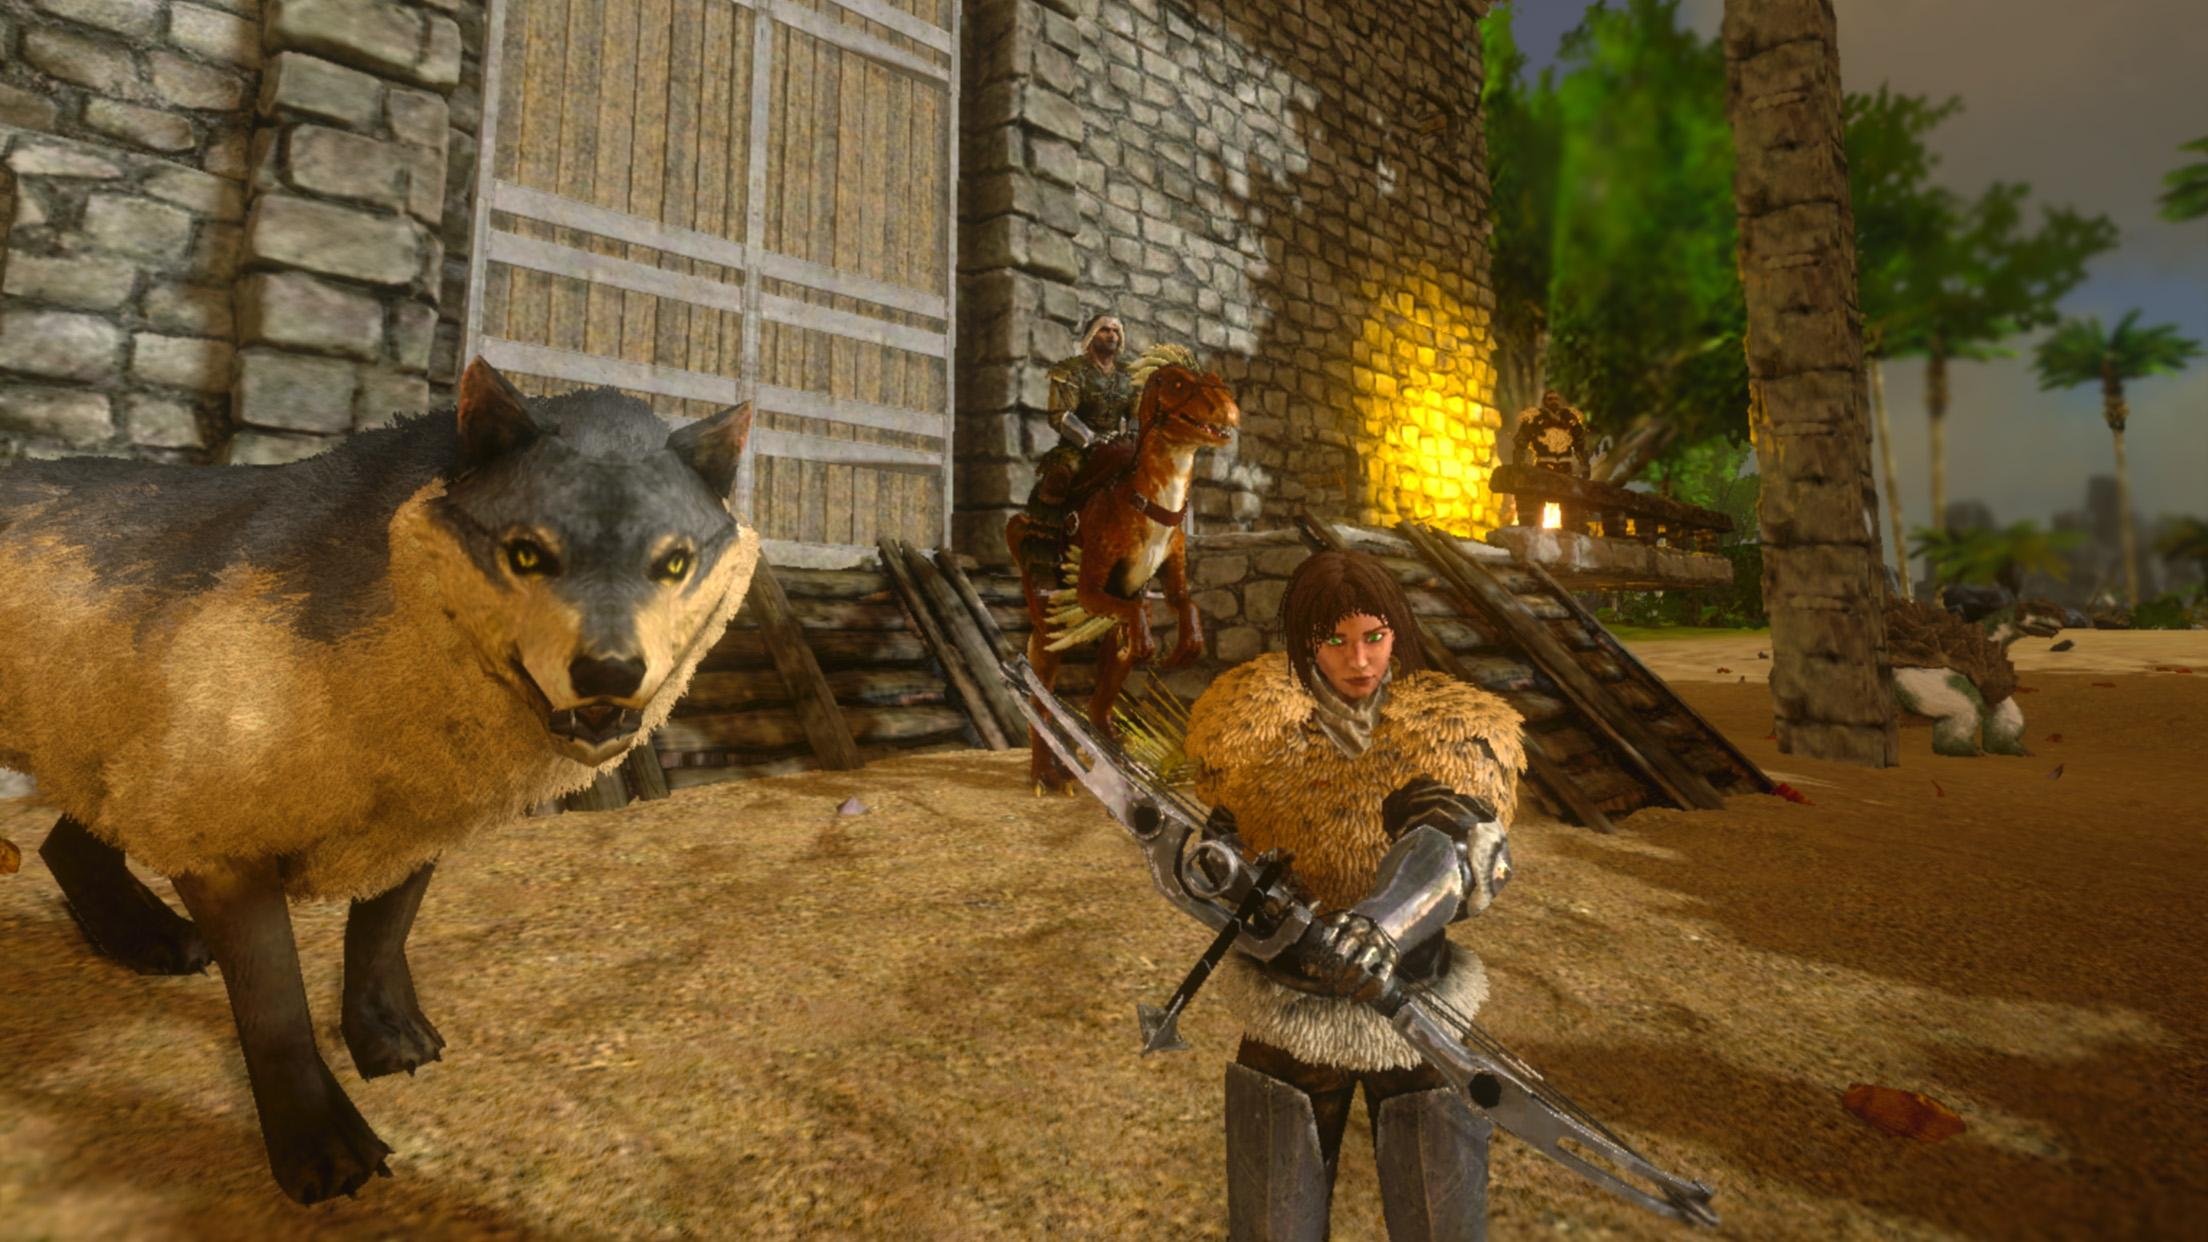 Download Ark: Survival Evolved on PC with BlueStacks